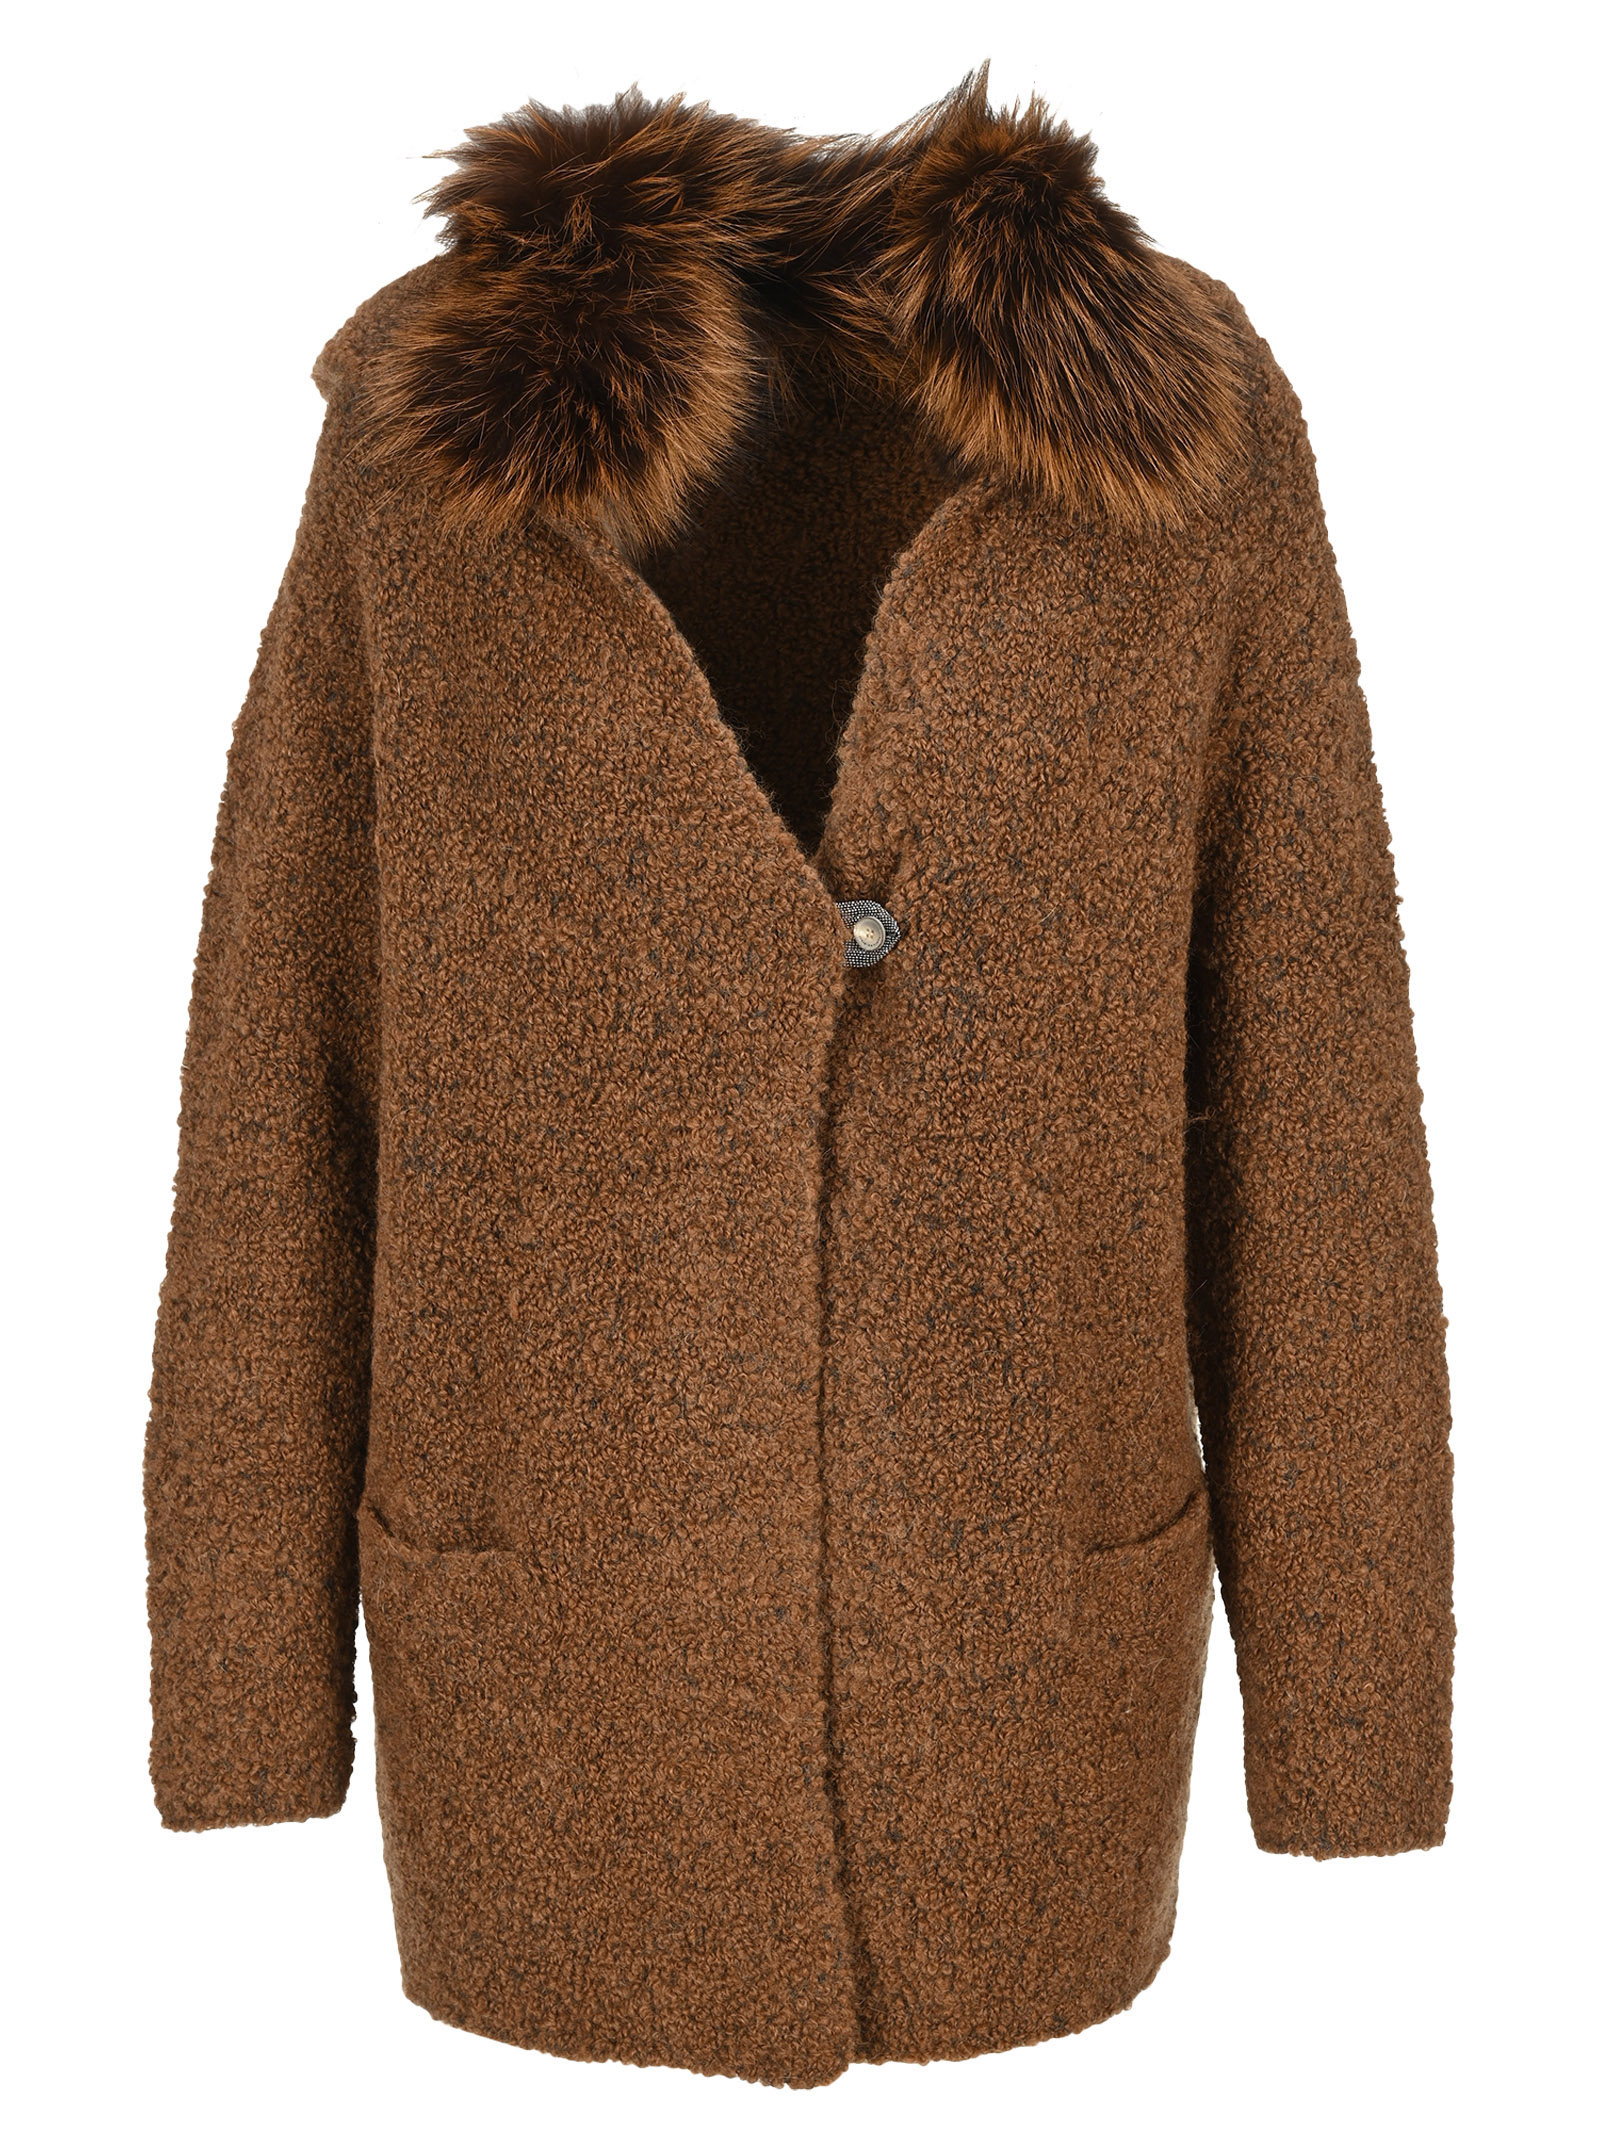 Fabiana Filippi FUR COLLAR CARDIGAN